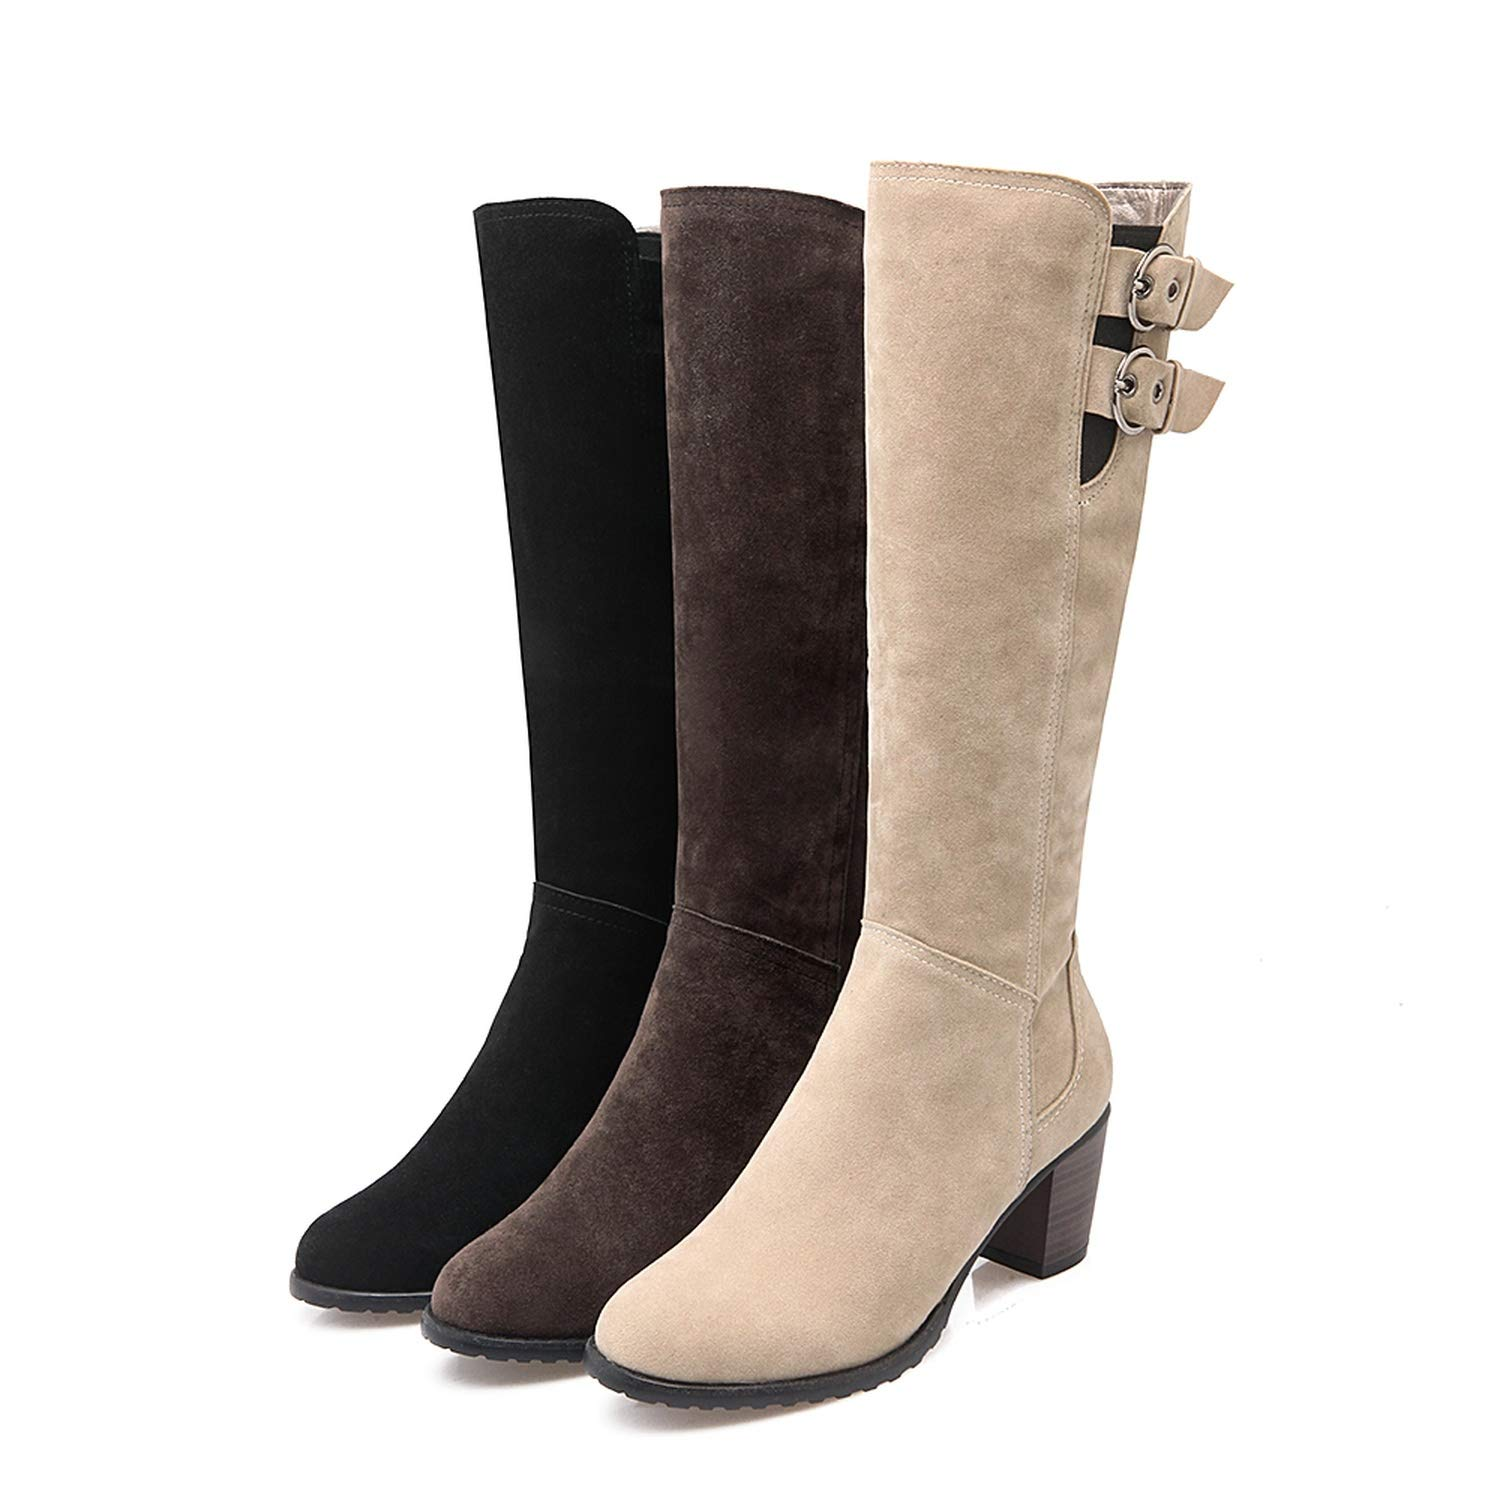 Women Boots Plus Size Med Square Heel Round Toe Knee-High Zip Woman Shoes Winter Boot